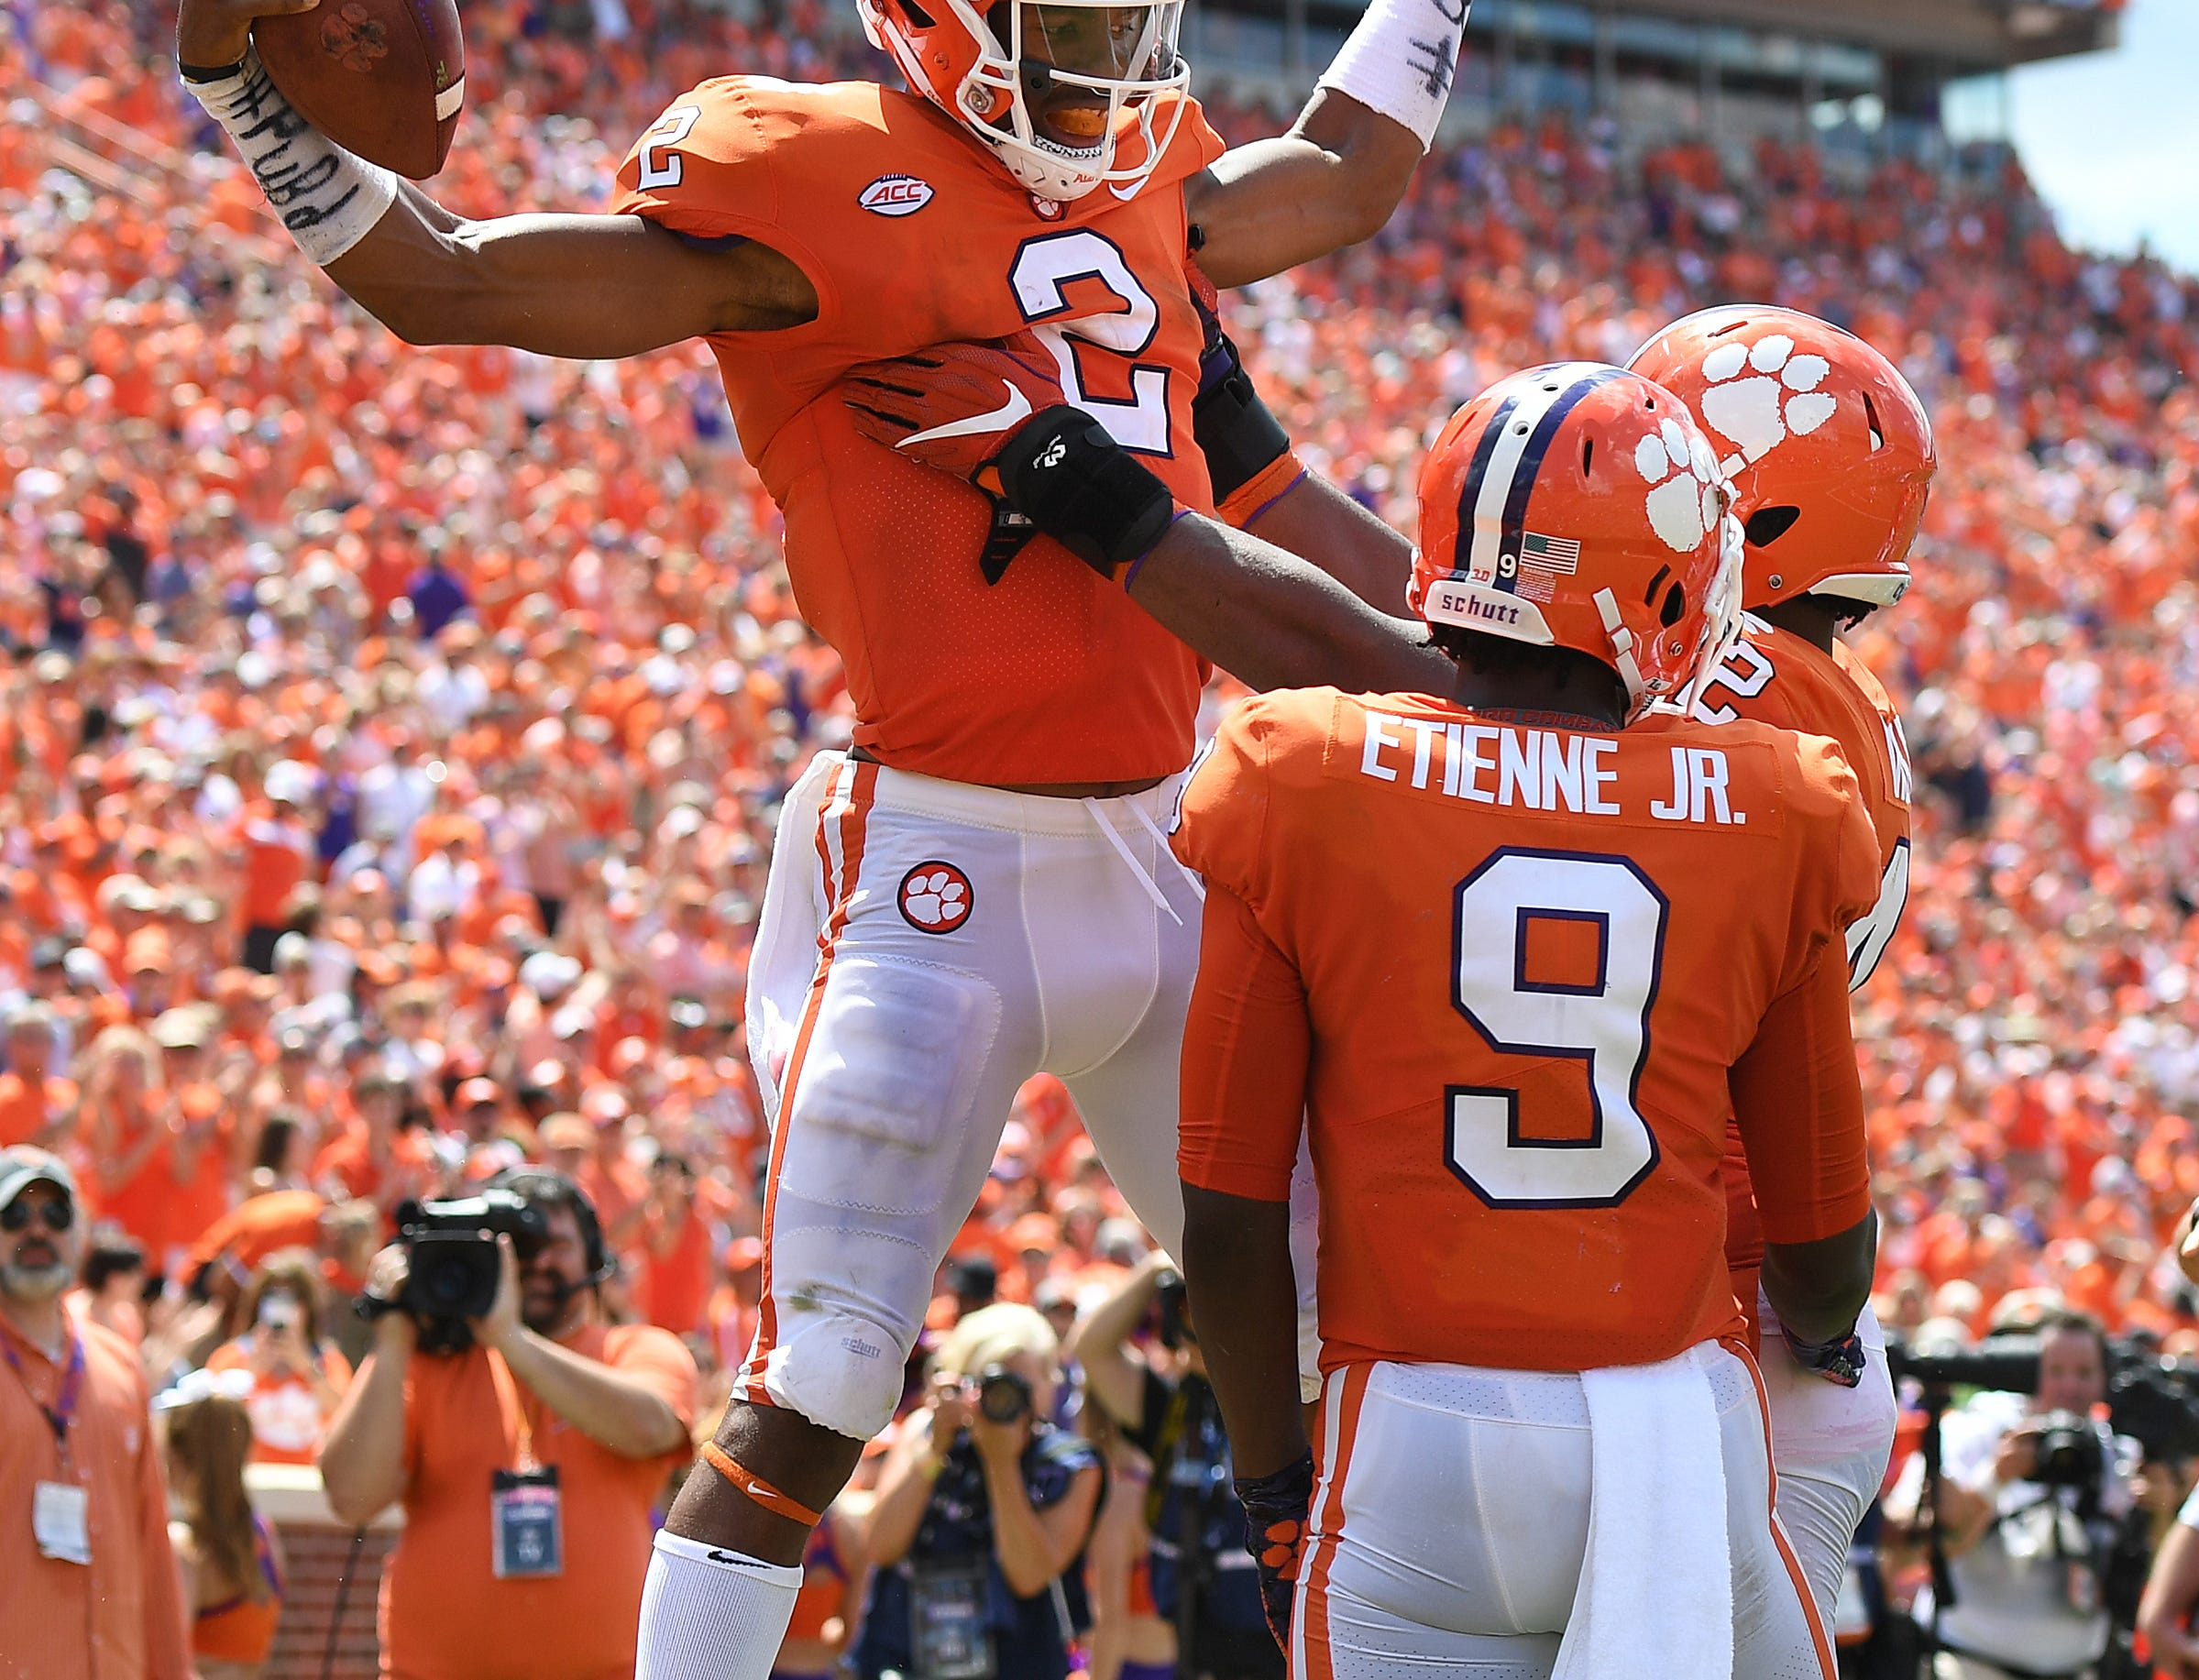 Clemson quarterback Kelly Bryant (2) celebrates with defensive lineman Christian Wilkins (42) and running back Travis Etienne (9) after scoring against Furman during the 3rd quarter Saturday, September 1, 2018 at Clemson's Memorial Stadium.